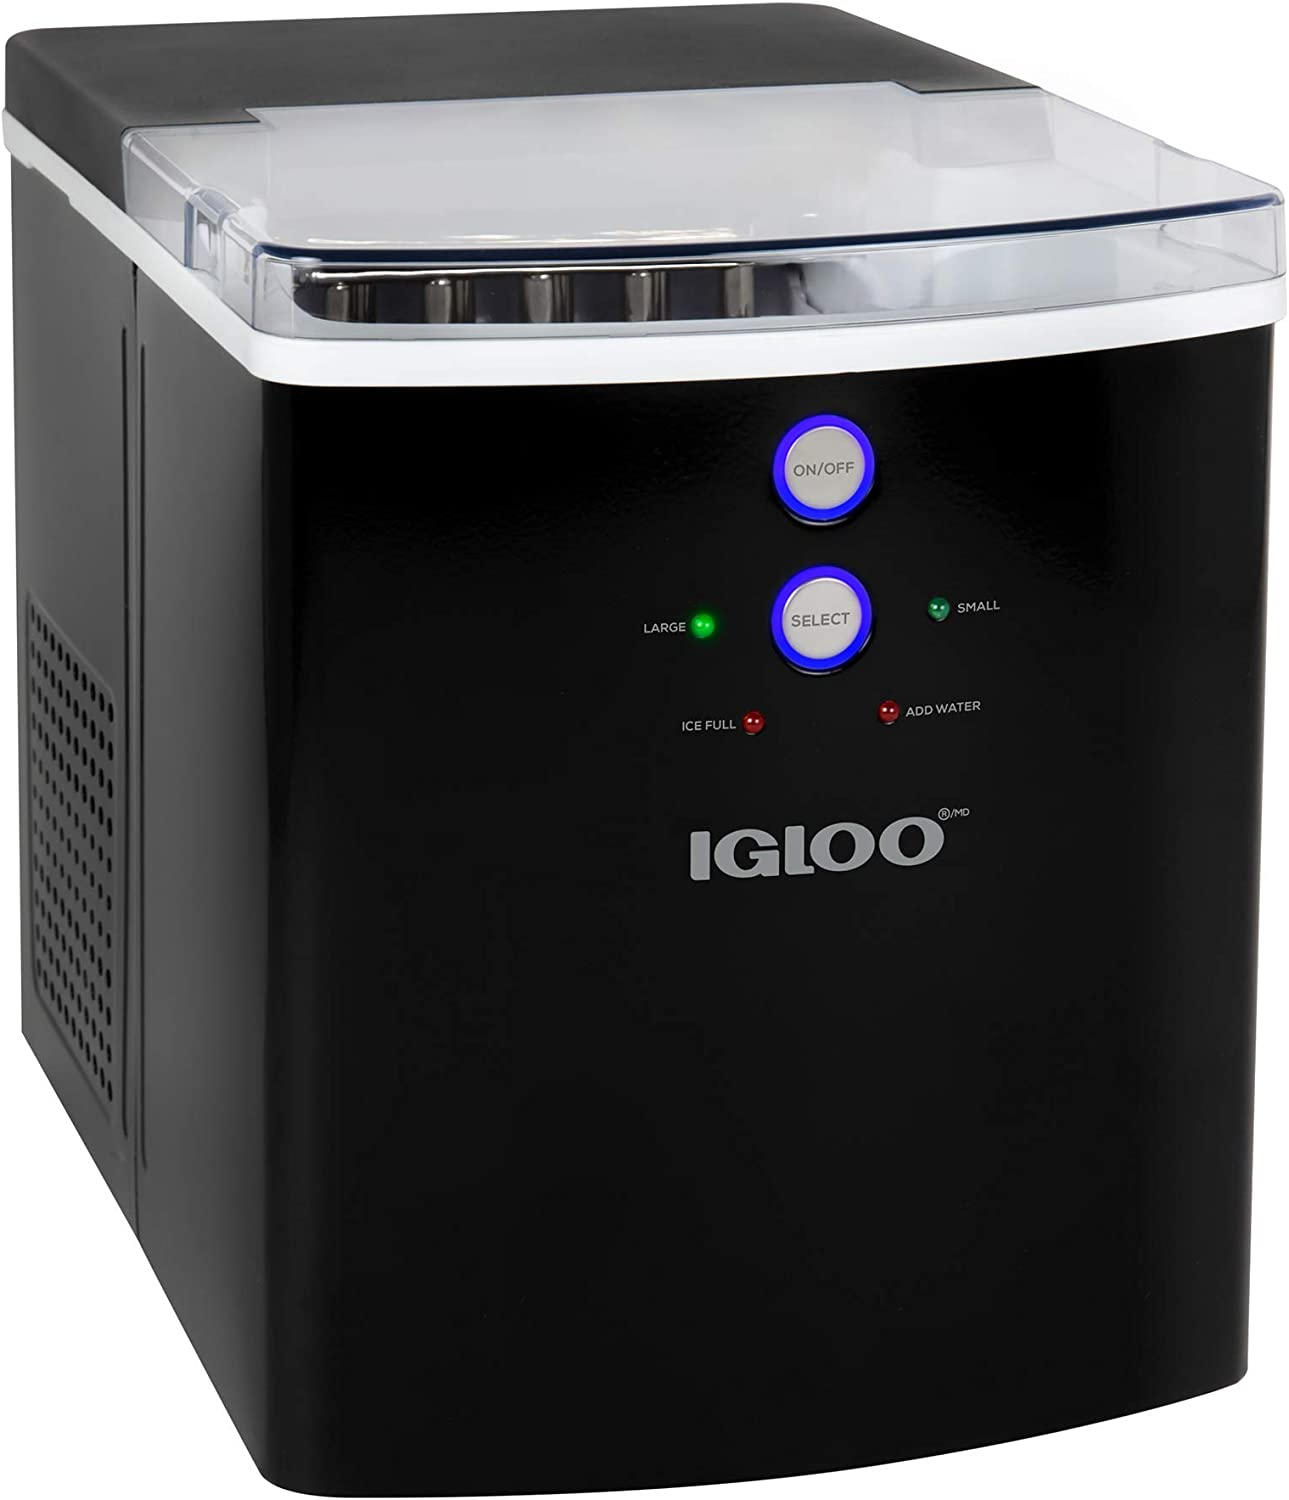 Igloo Large-Capacity Automatic Portable Electric Countertop Ice Maker Machine